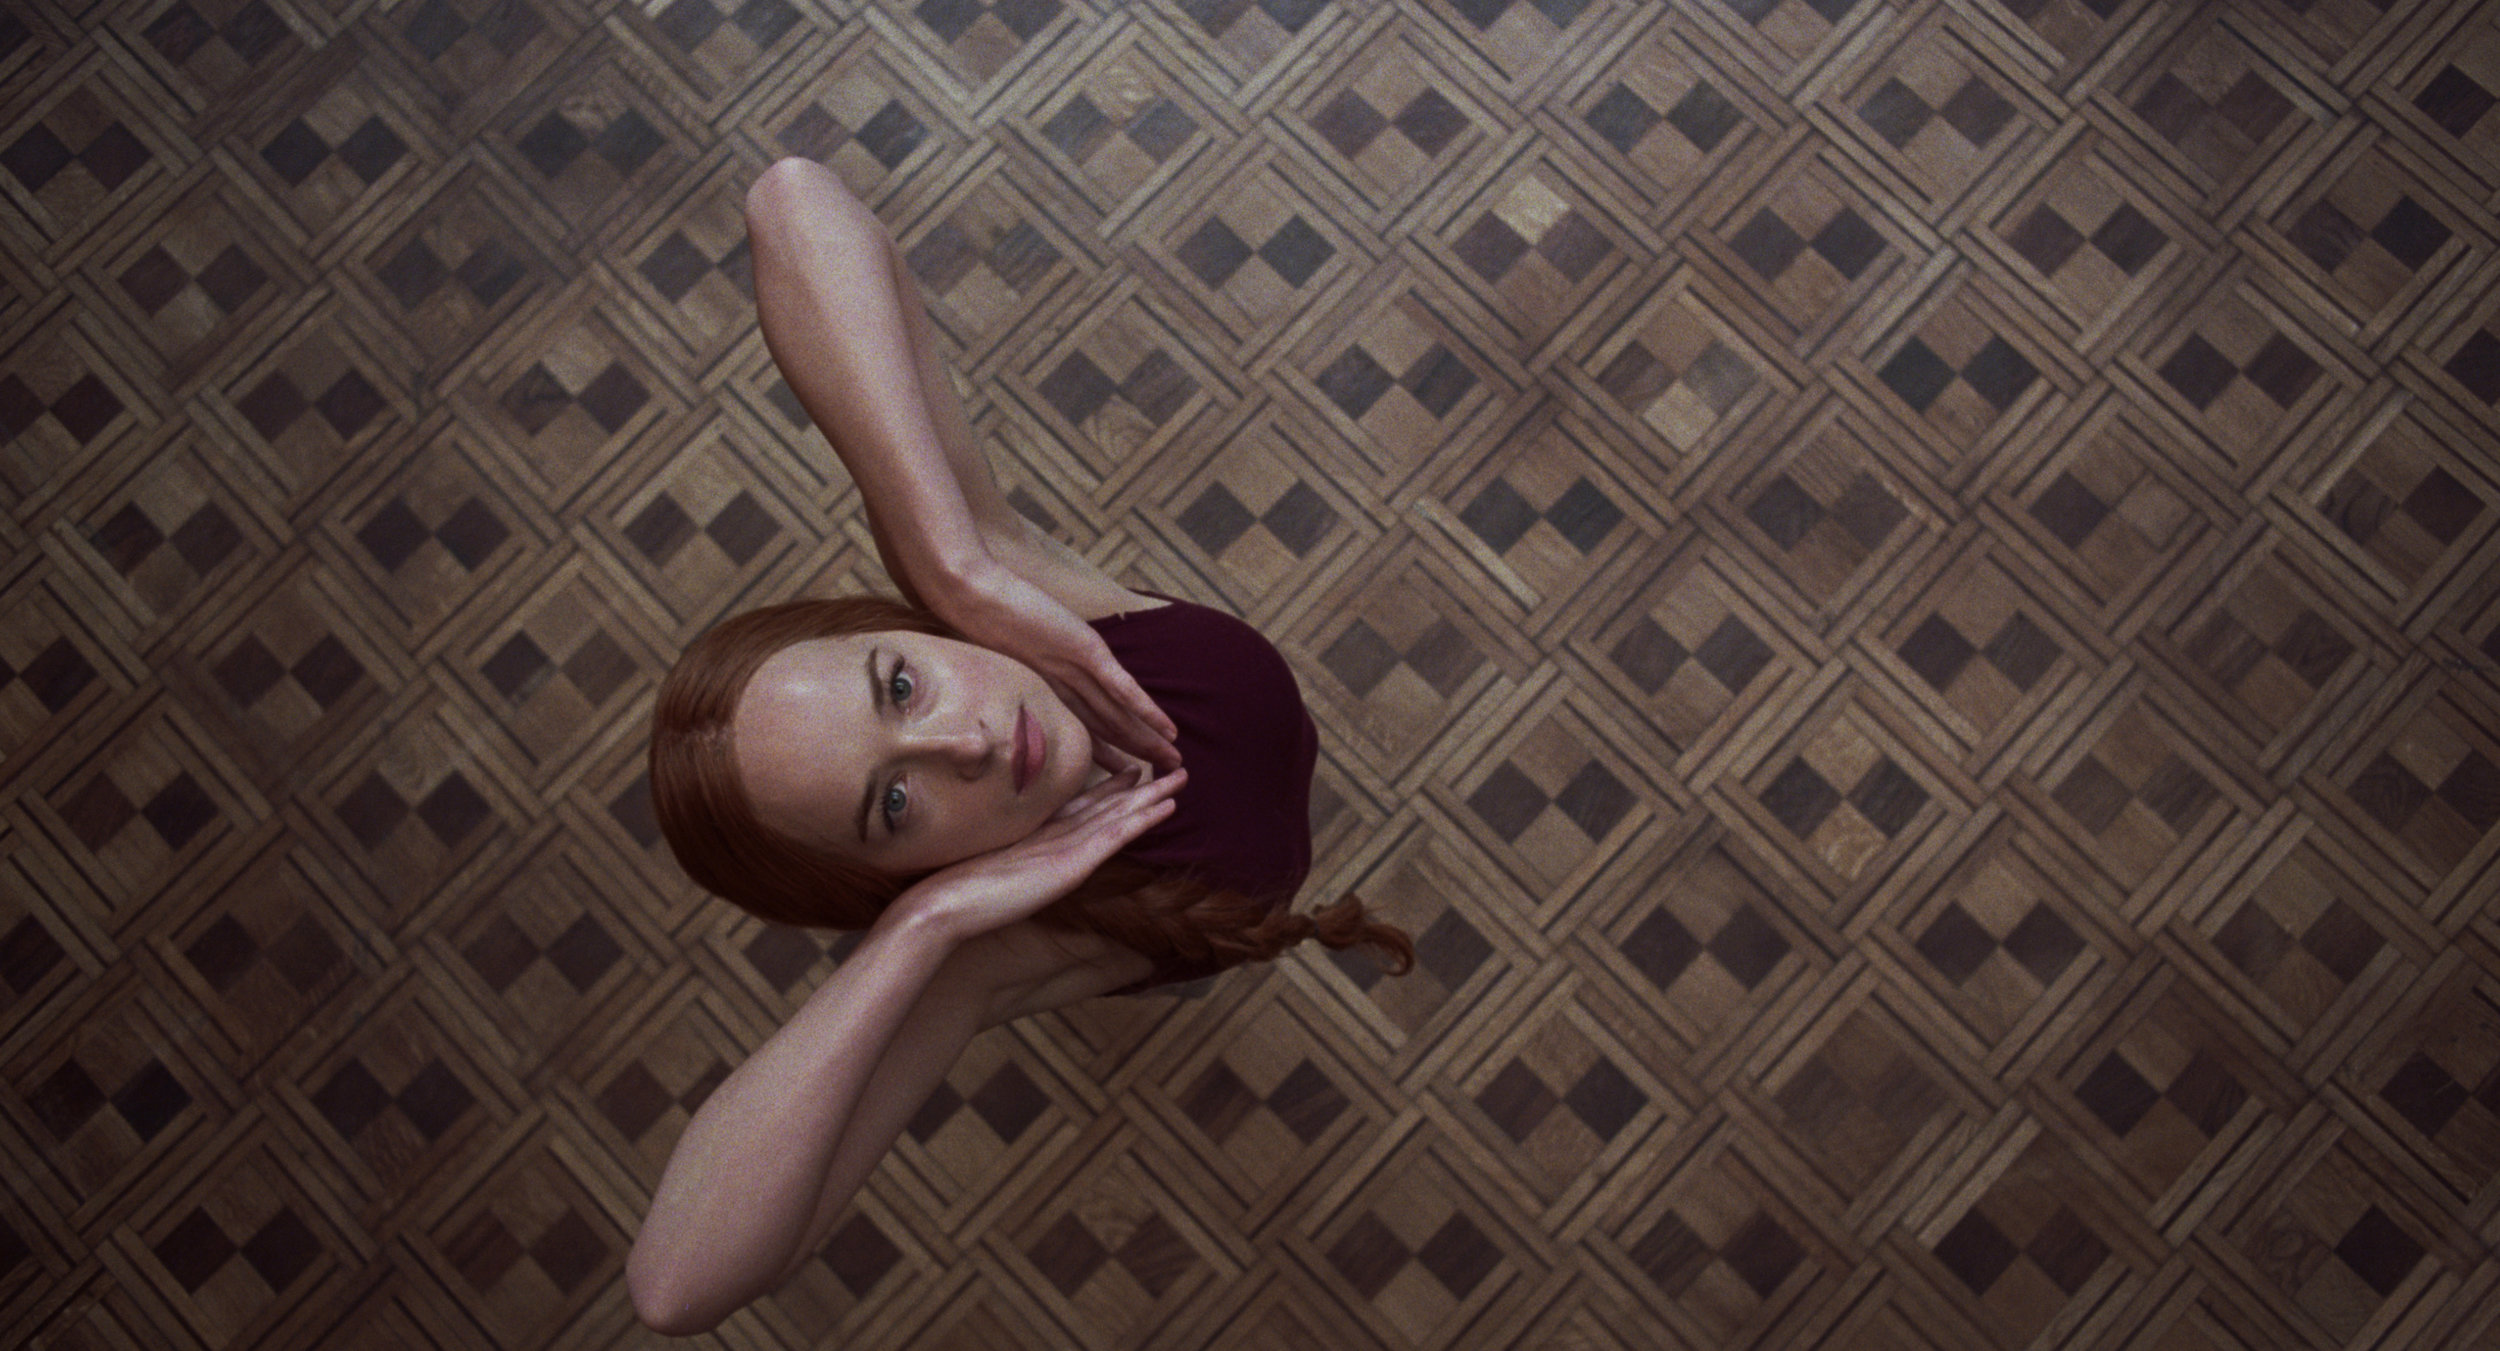 """Dakota Johnson plays Susie Bannon, a young dancer who may be the key to unlocking a mystery in a Berlin dance studio, in Luca Guadagnino's adaptation of the horror cult classic """"Suspiria."""" (Photo courtesy Amazon Studios)"""